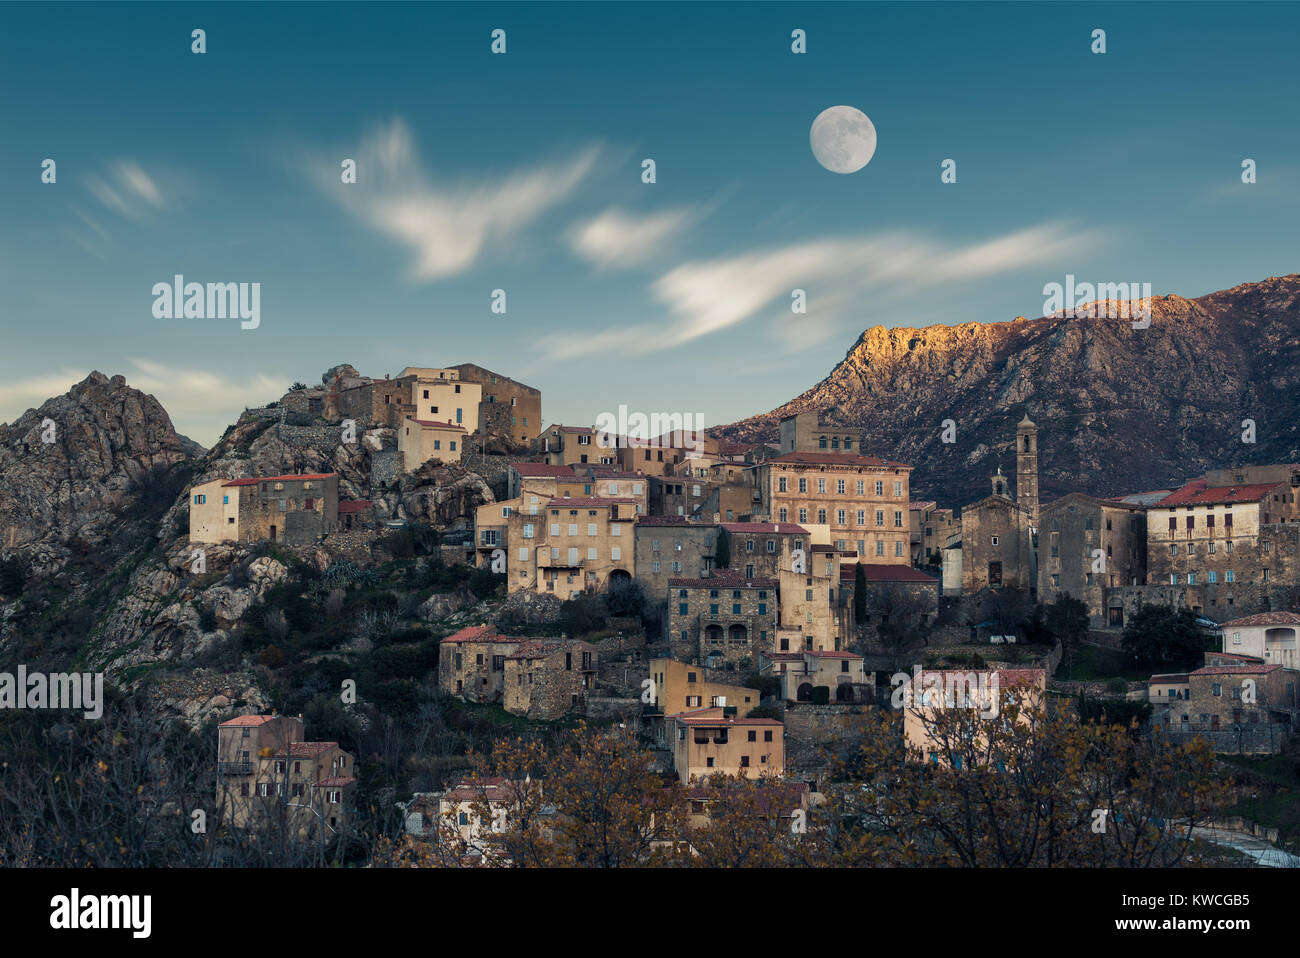 Full moon rising over the houses of the mountain village of Speloncato in the Balagne region of Corsica as the last - Stock Image